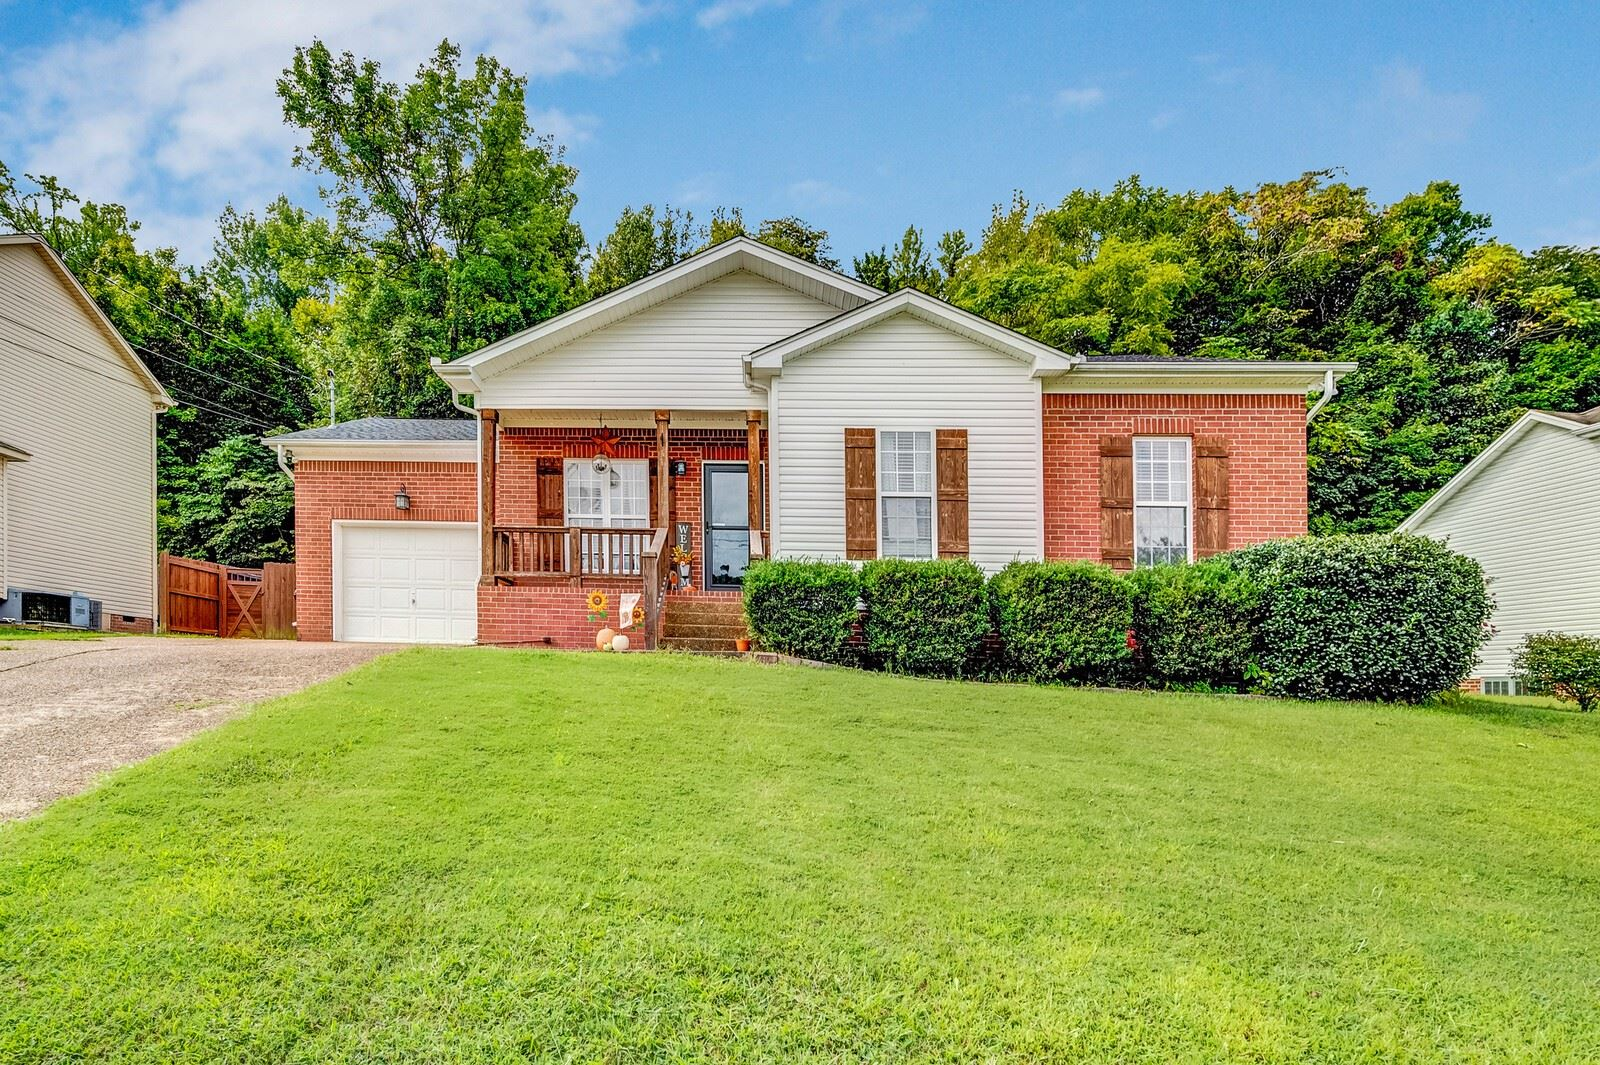 421 Brownstone St, Old Hickory, TN 37138 - MLS#: 2292166